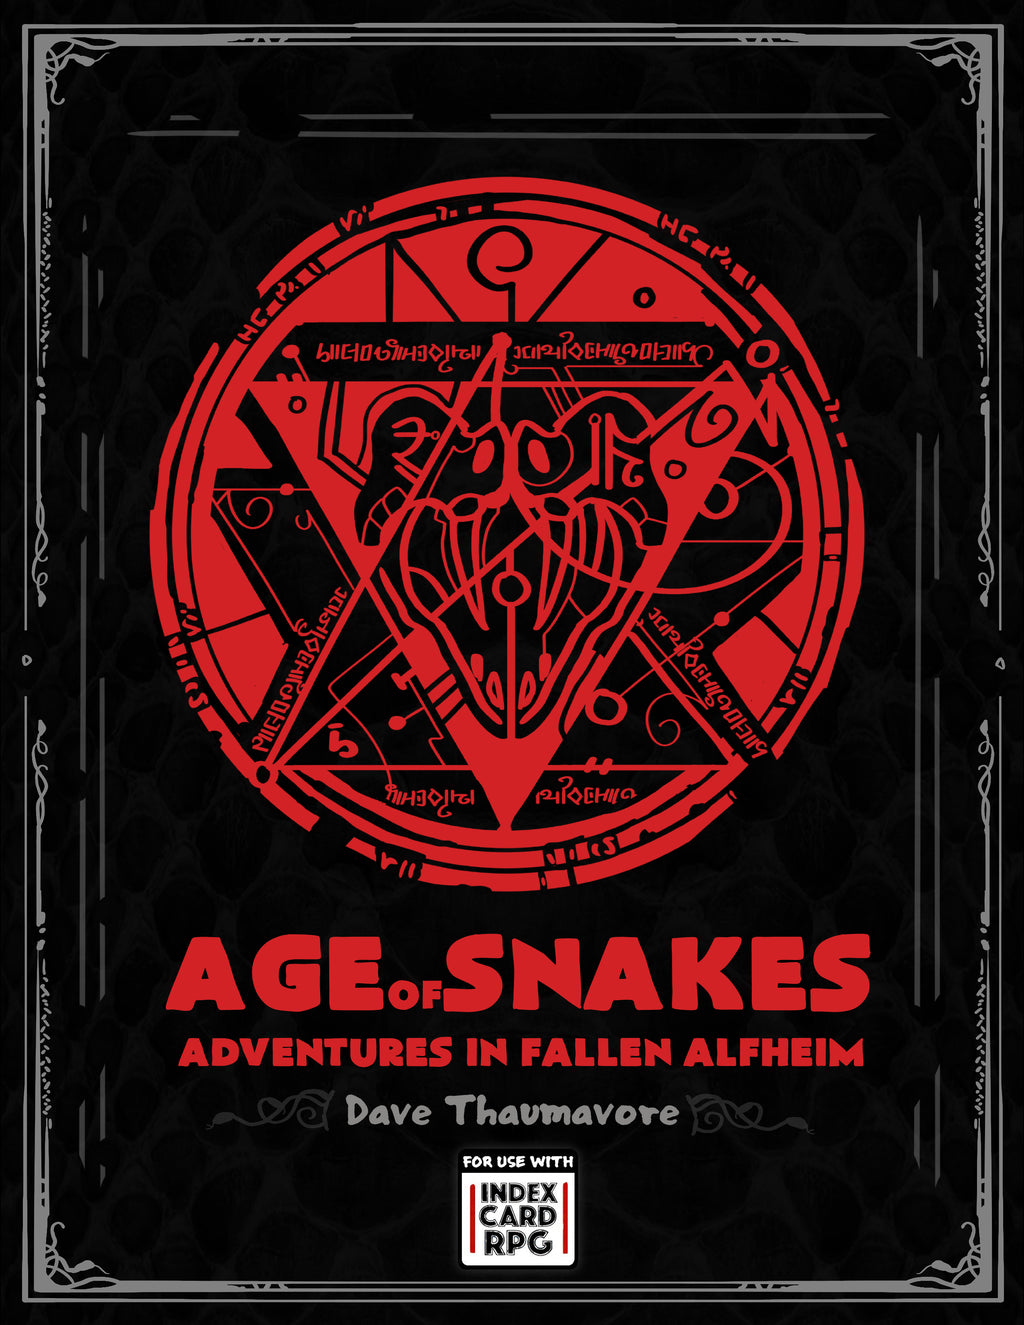 Age of Snakes: Adventures in a Fallen Alfheim